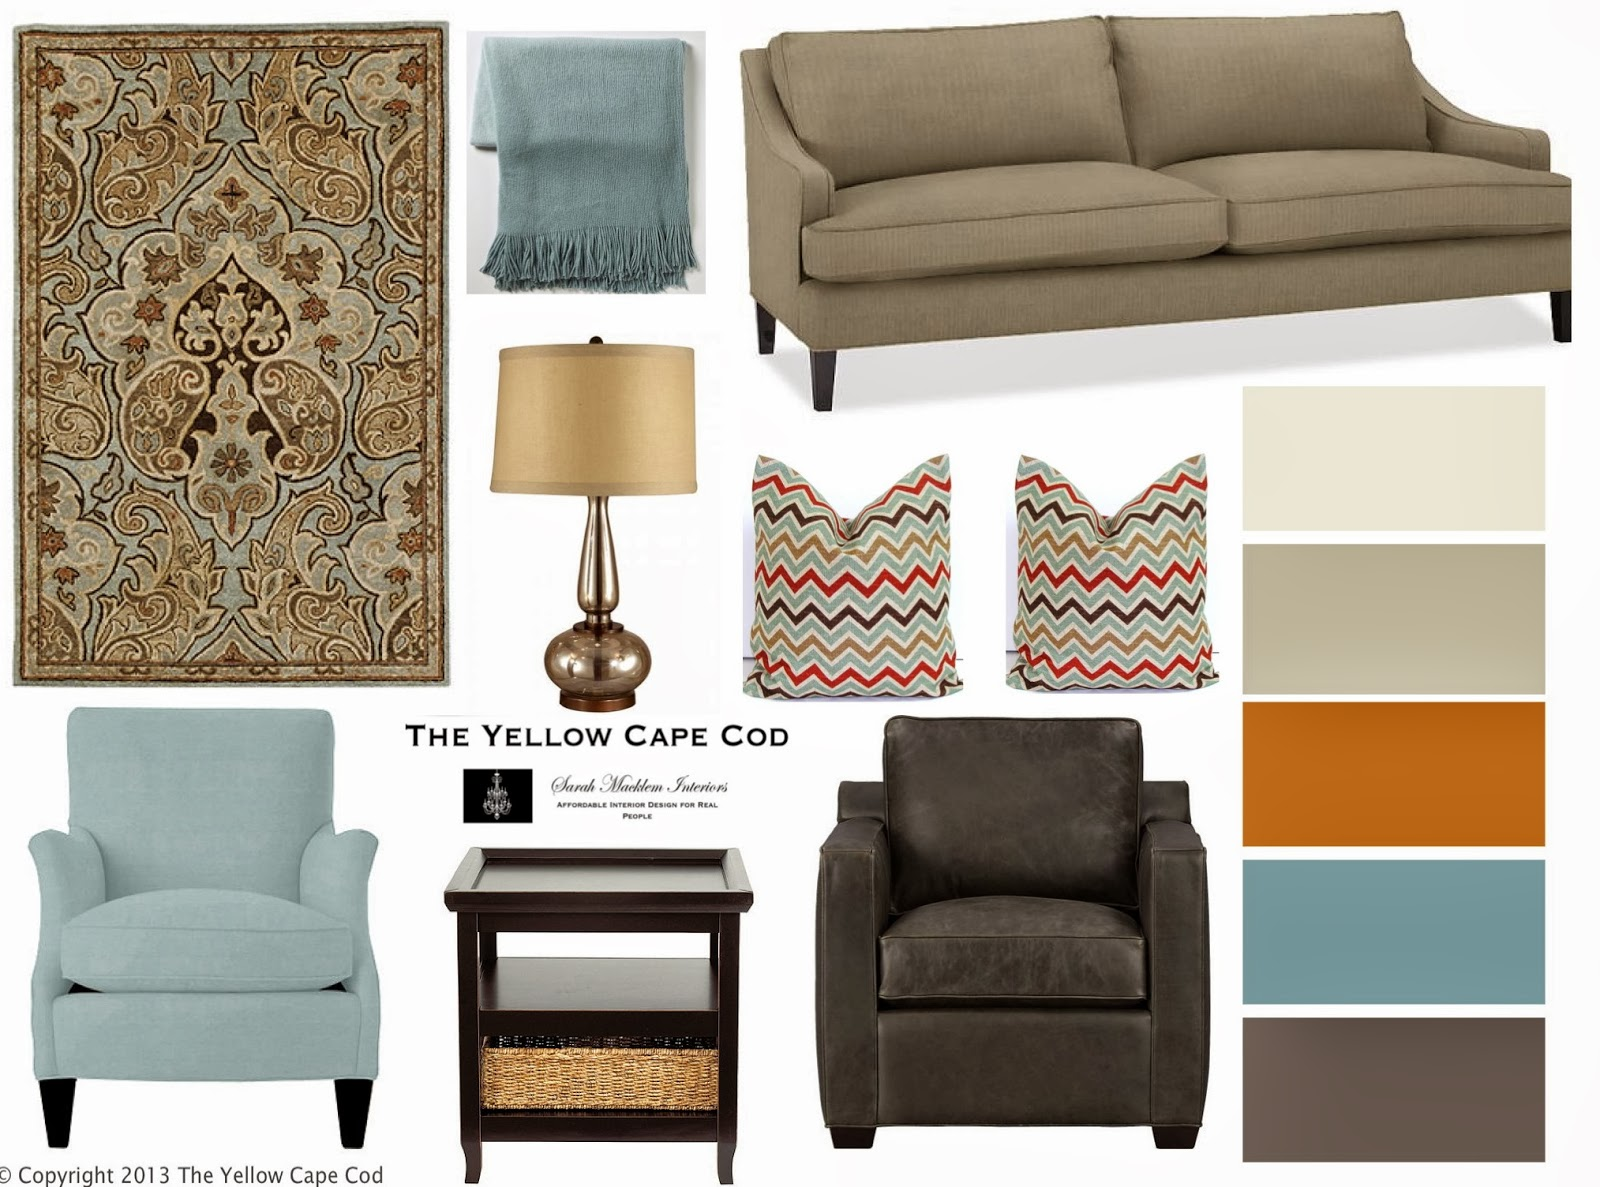 The Yellow Cape Cod His And Her Chairs How To Mix Furniture Styles